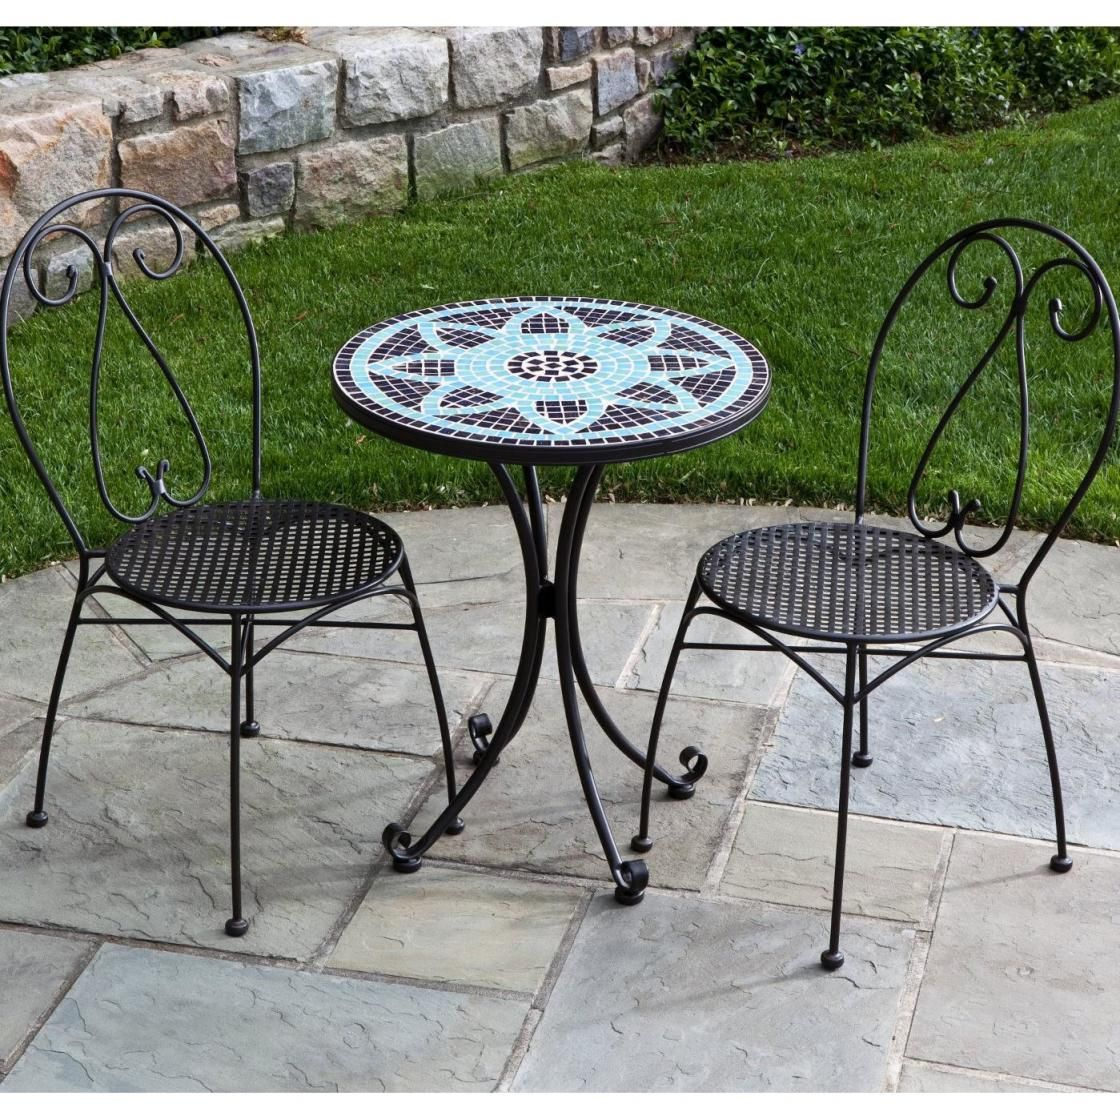 Appealing outdoor patio furniture ideas featuring trendy for Outdoor patio furniture sets